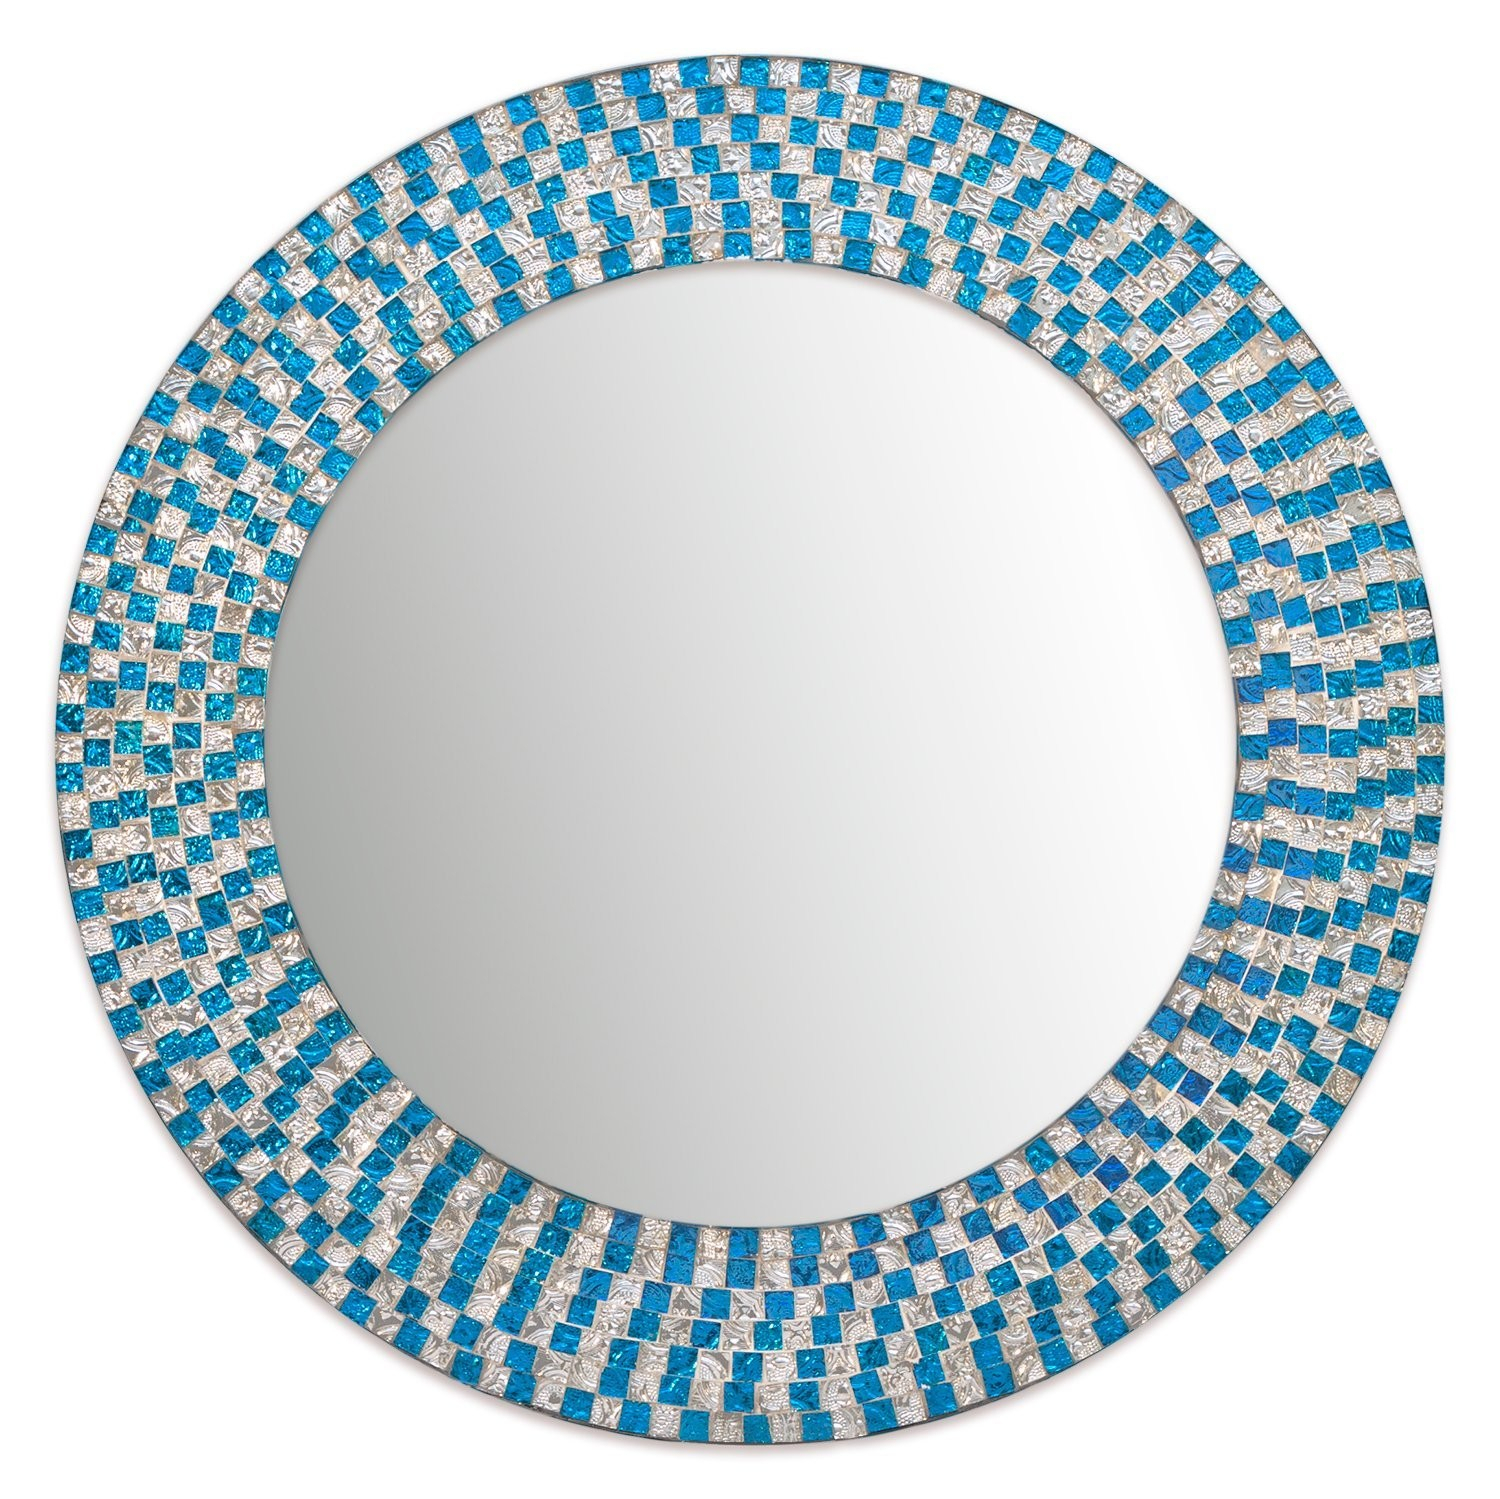 Decorshore Jewel Tone Accent Round Decorative Wall Mirror Inside Silver Frame Accent Mirrors (View 16 of 20)